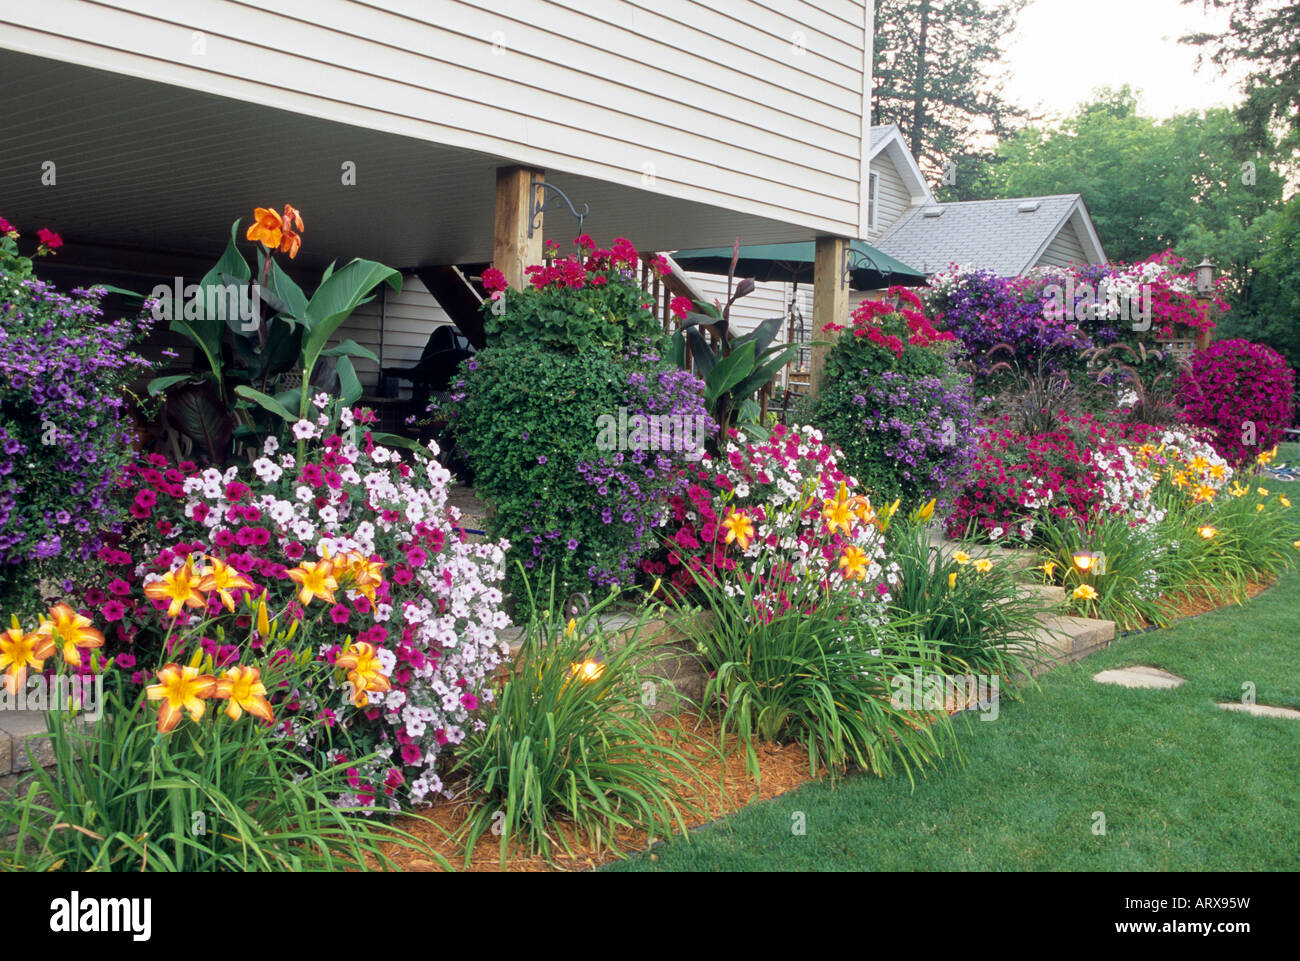 Tidal Wave Petunias Stock Photos U0026 Tidal Wave Petunias Stock Images - Alamy